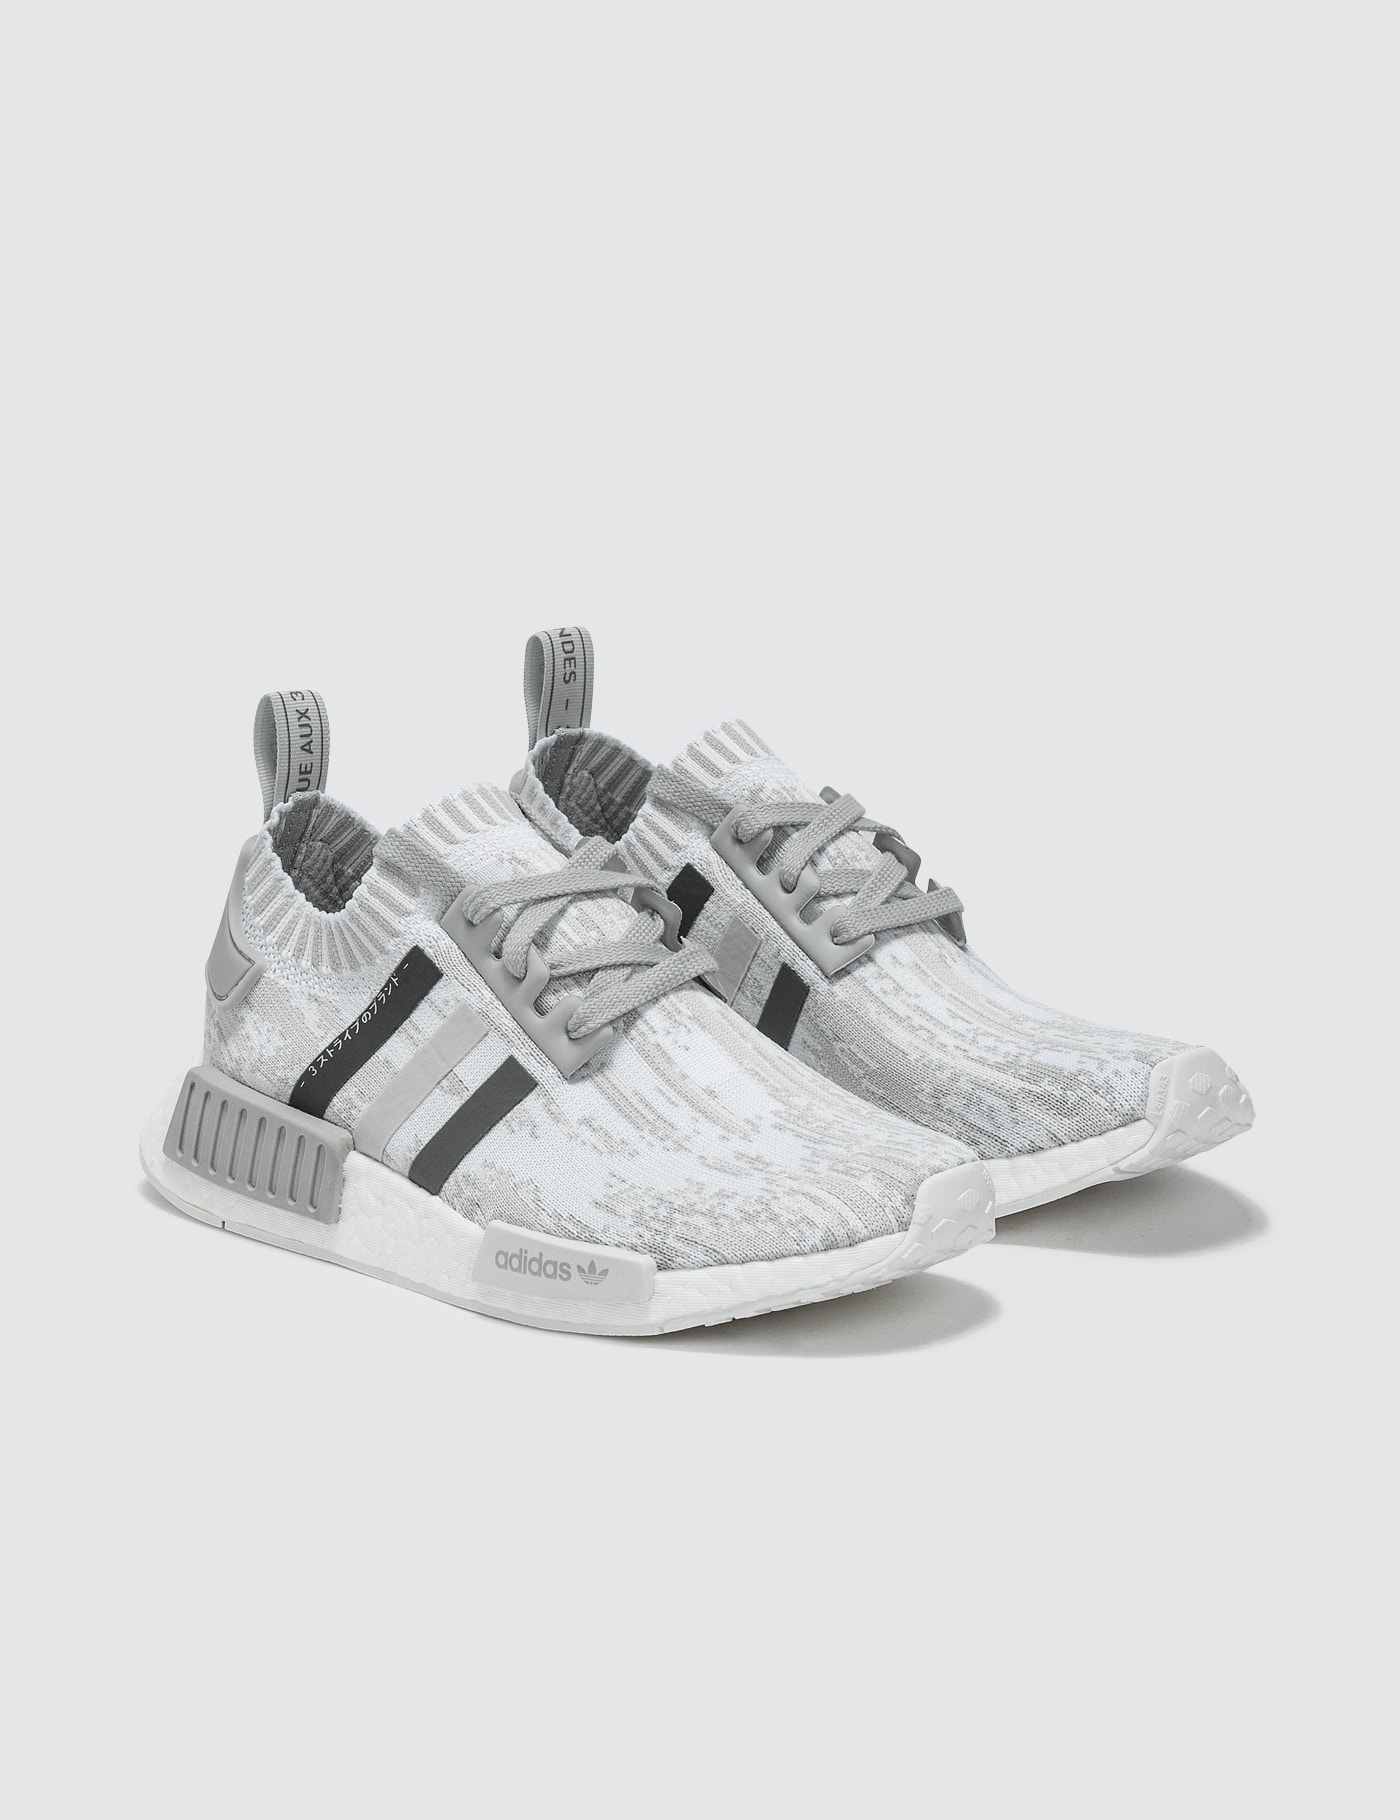 the sale of shoes best place new images of NMD R1 W PK, Adidas Originals